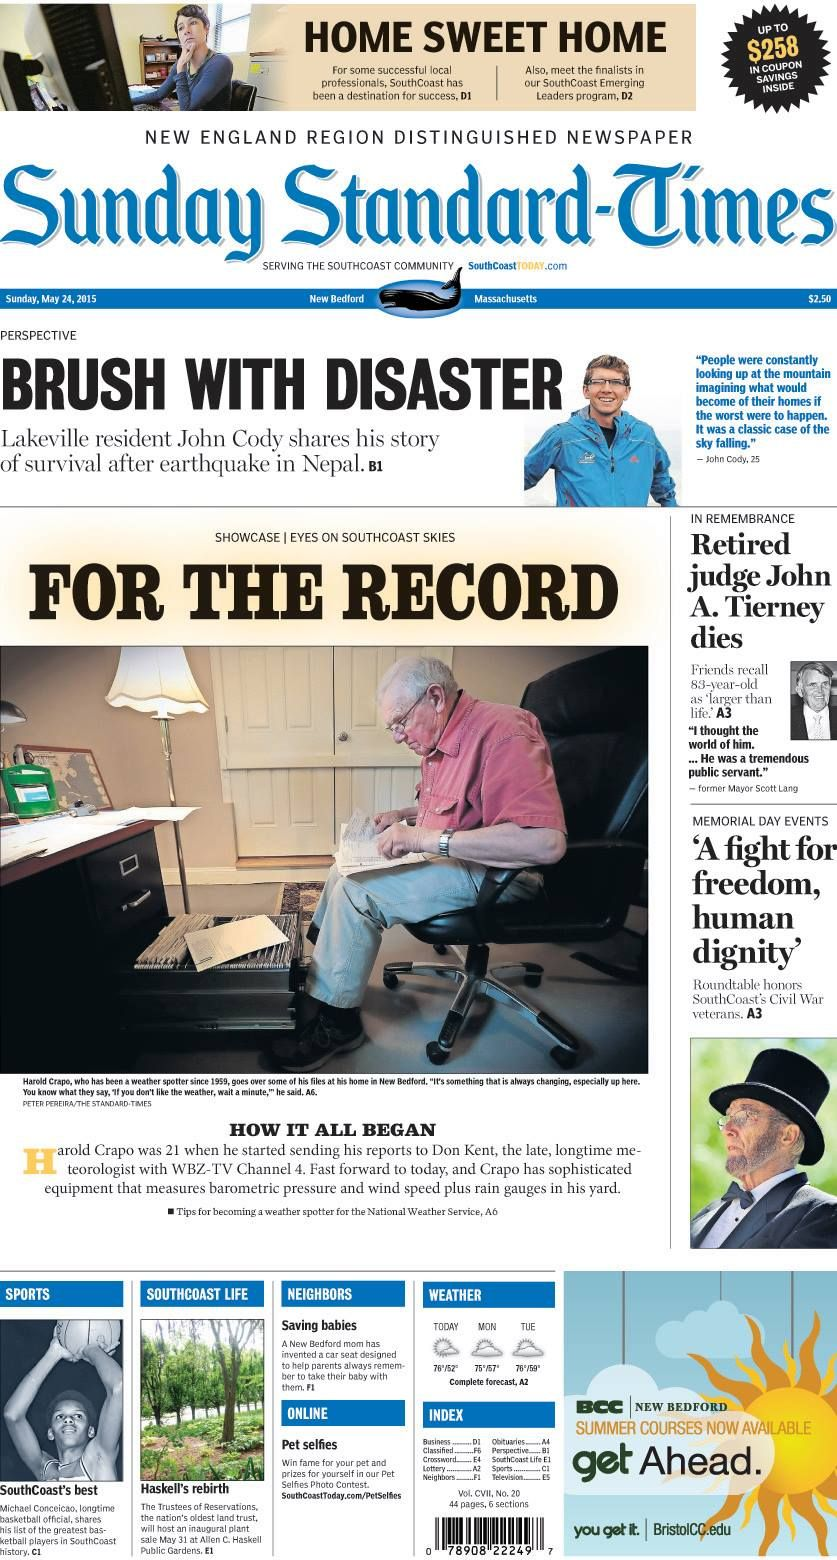 The Standard-Times. May 24, 2015.  Lakeville man shares how he survived earthquake in Nepal; New Bedford man has been recording SouthCoast's weather since 1959; friends remember retired judge John Tierney; New Bedford mom creates car seat to save babies and more!